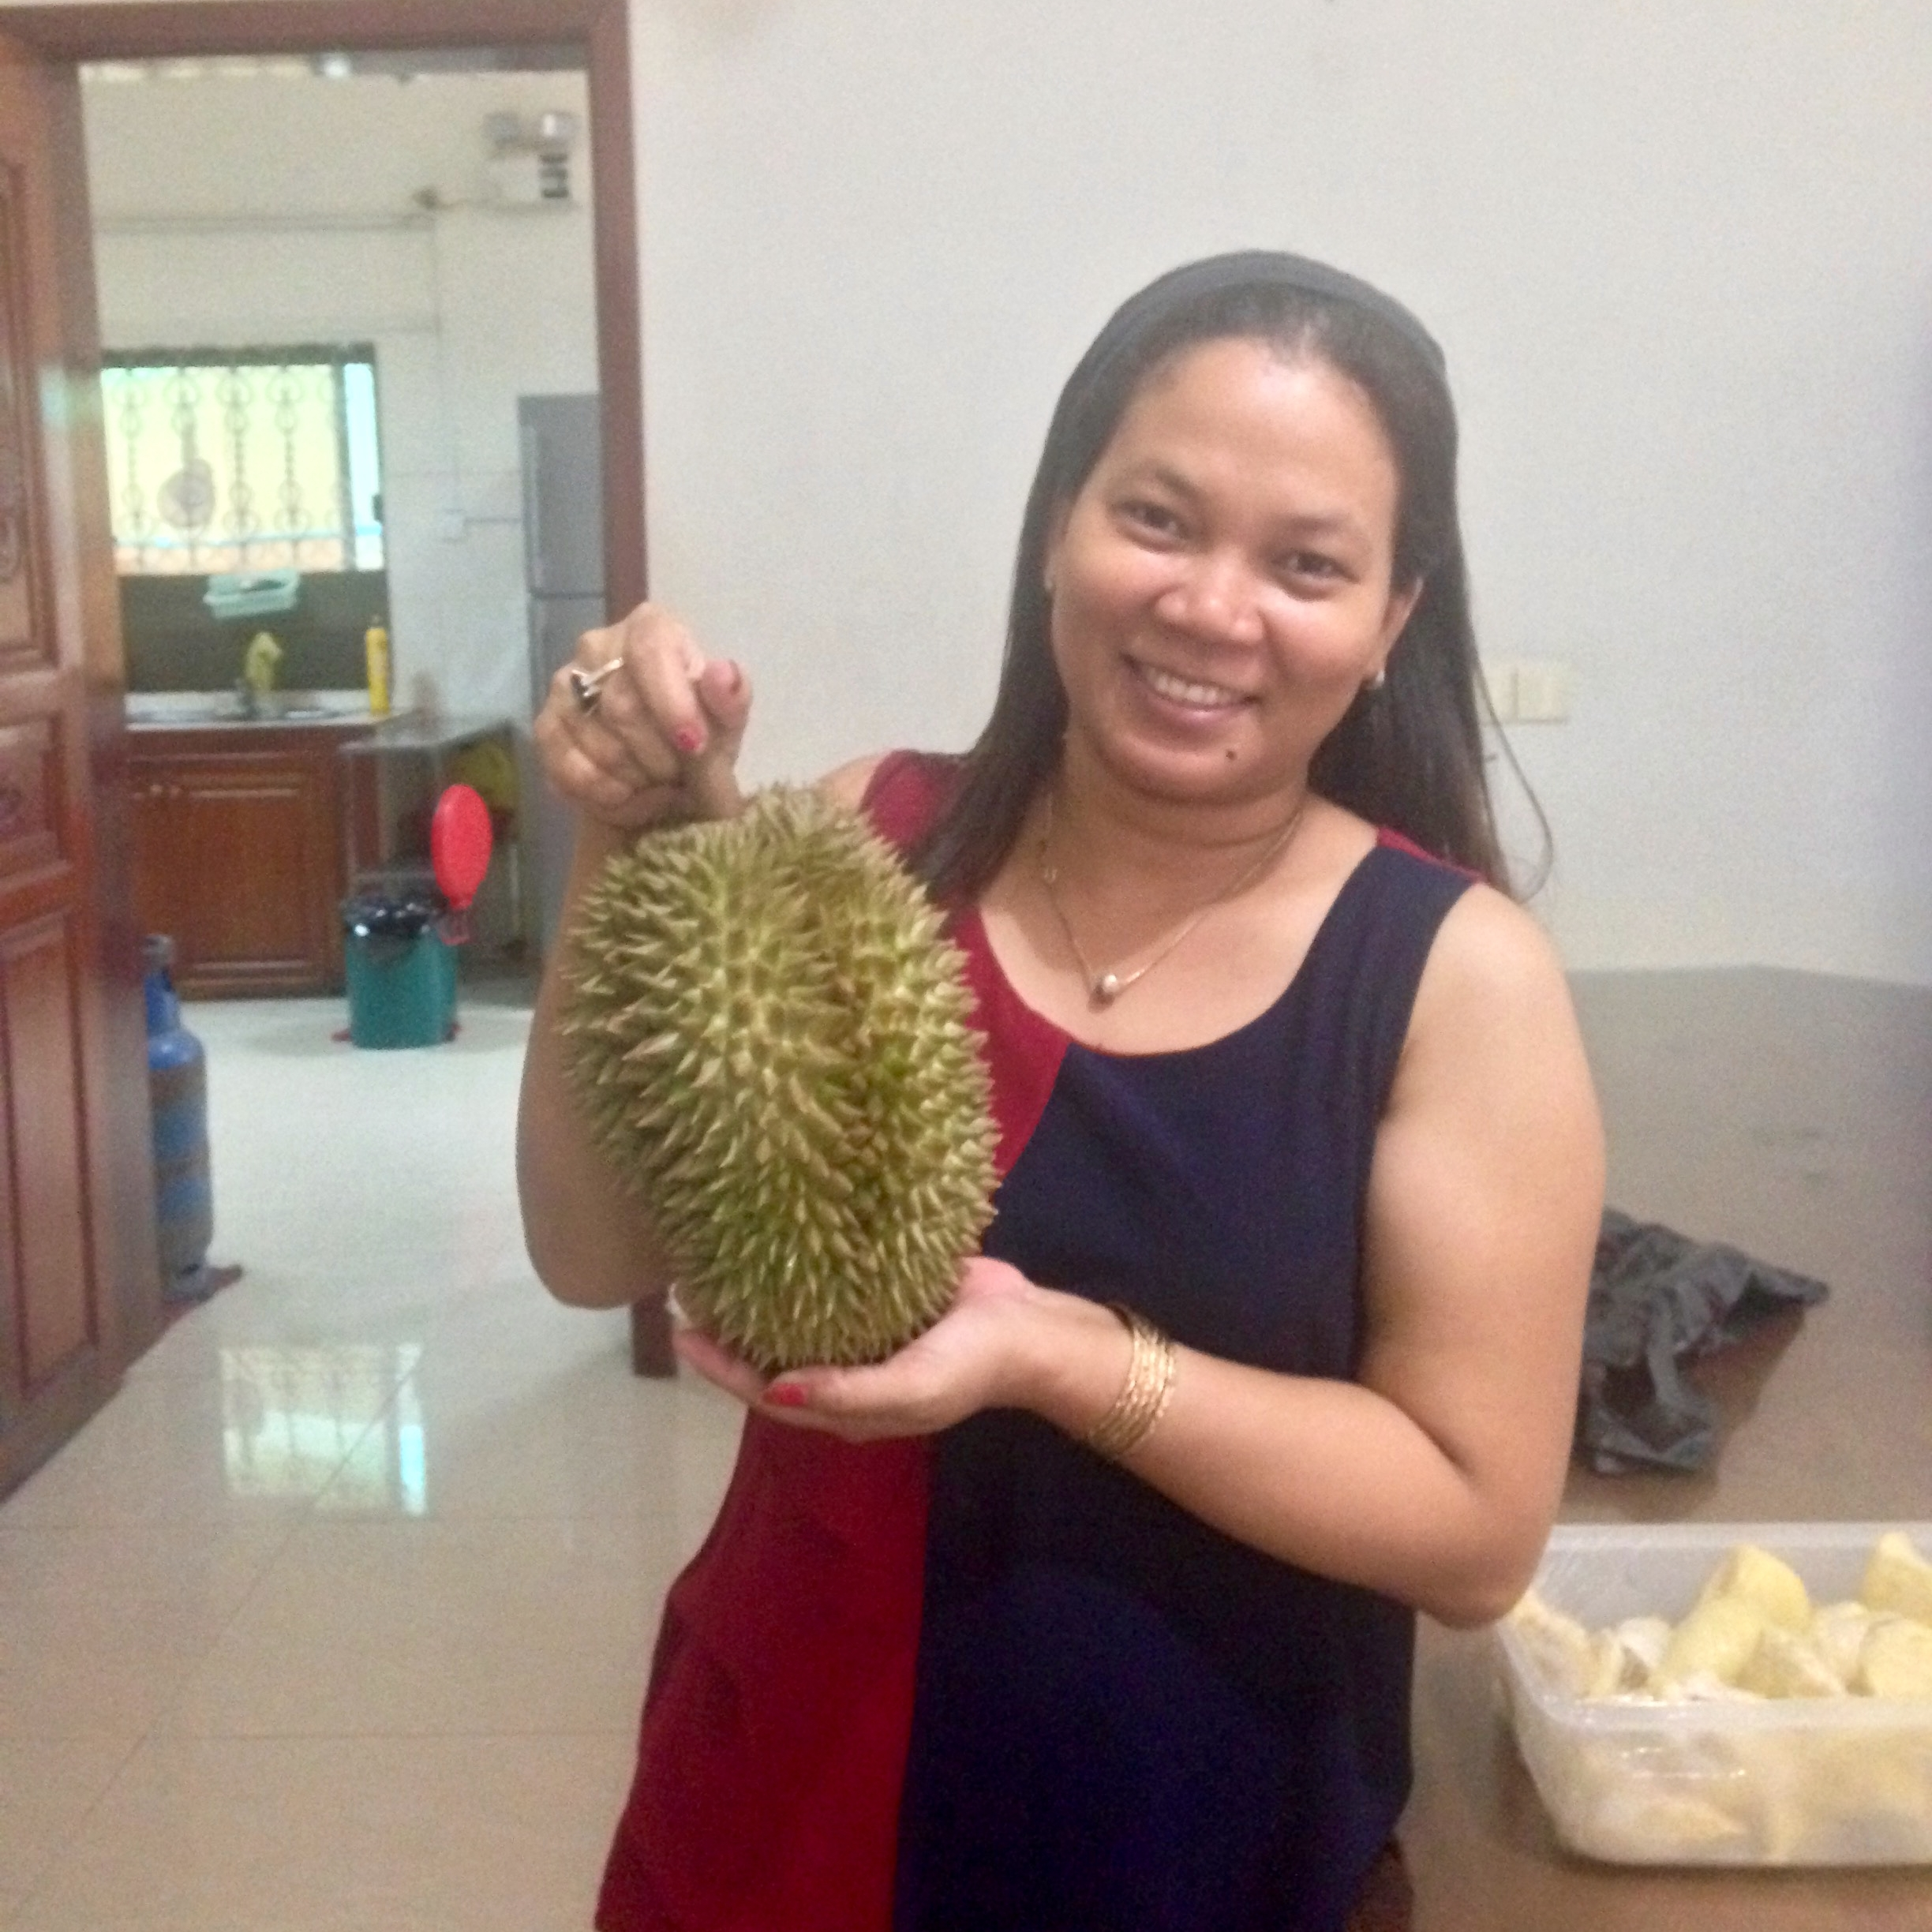 Avy holding a durian, a popular fruit in Southeast Asia with a rather pungent scent